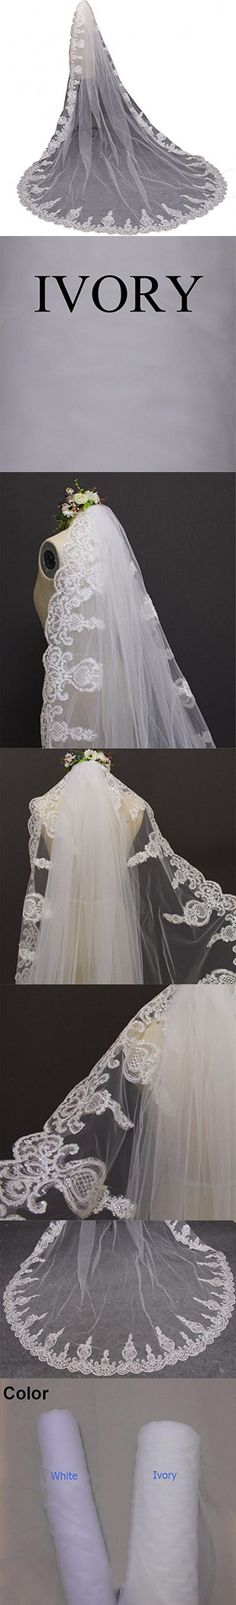 MERMAIDFUN Single Tier Sequins Lace 3 Meters Wedding Veil Long Bridal Veil